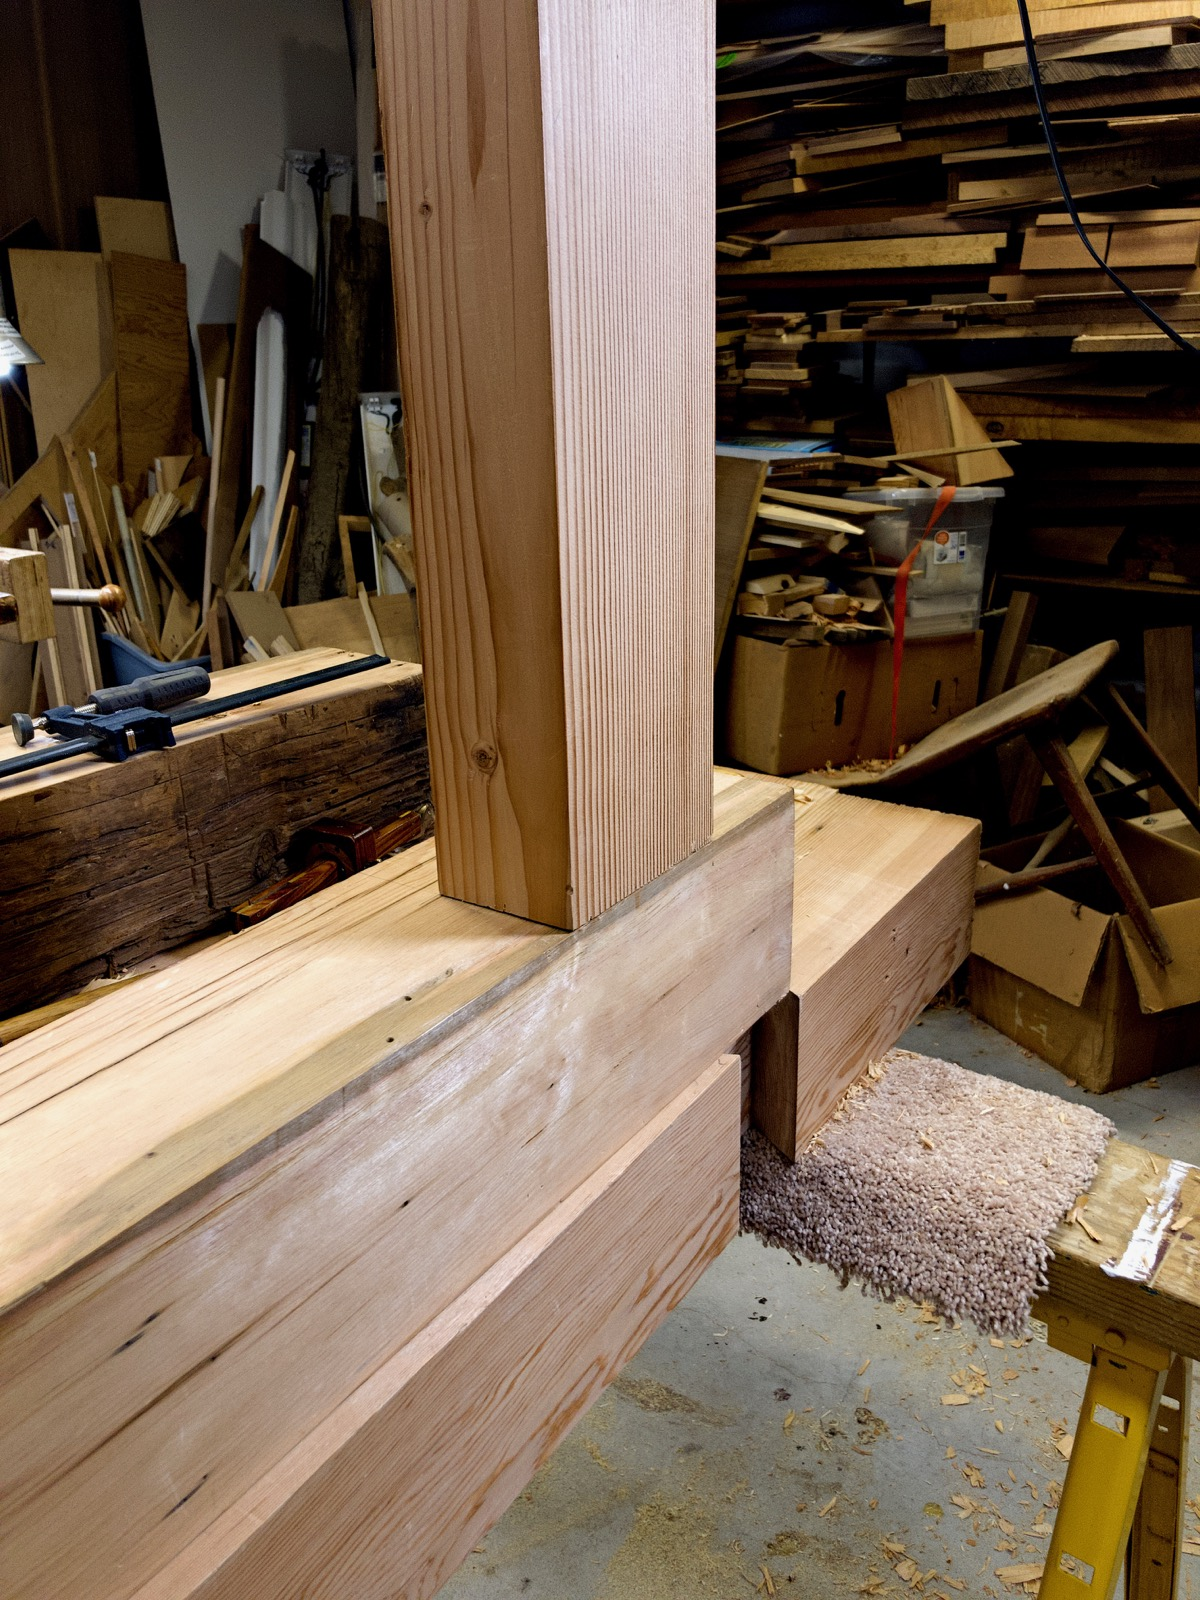 A completed mortise and tenon joint.